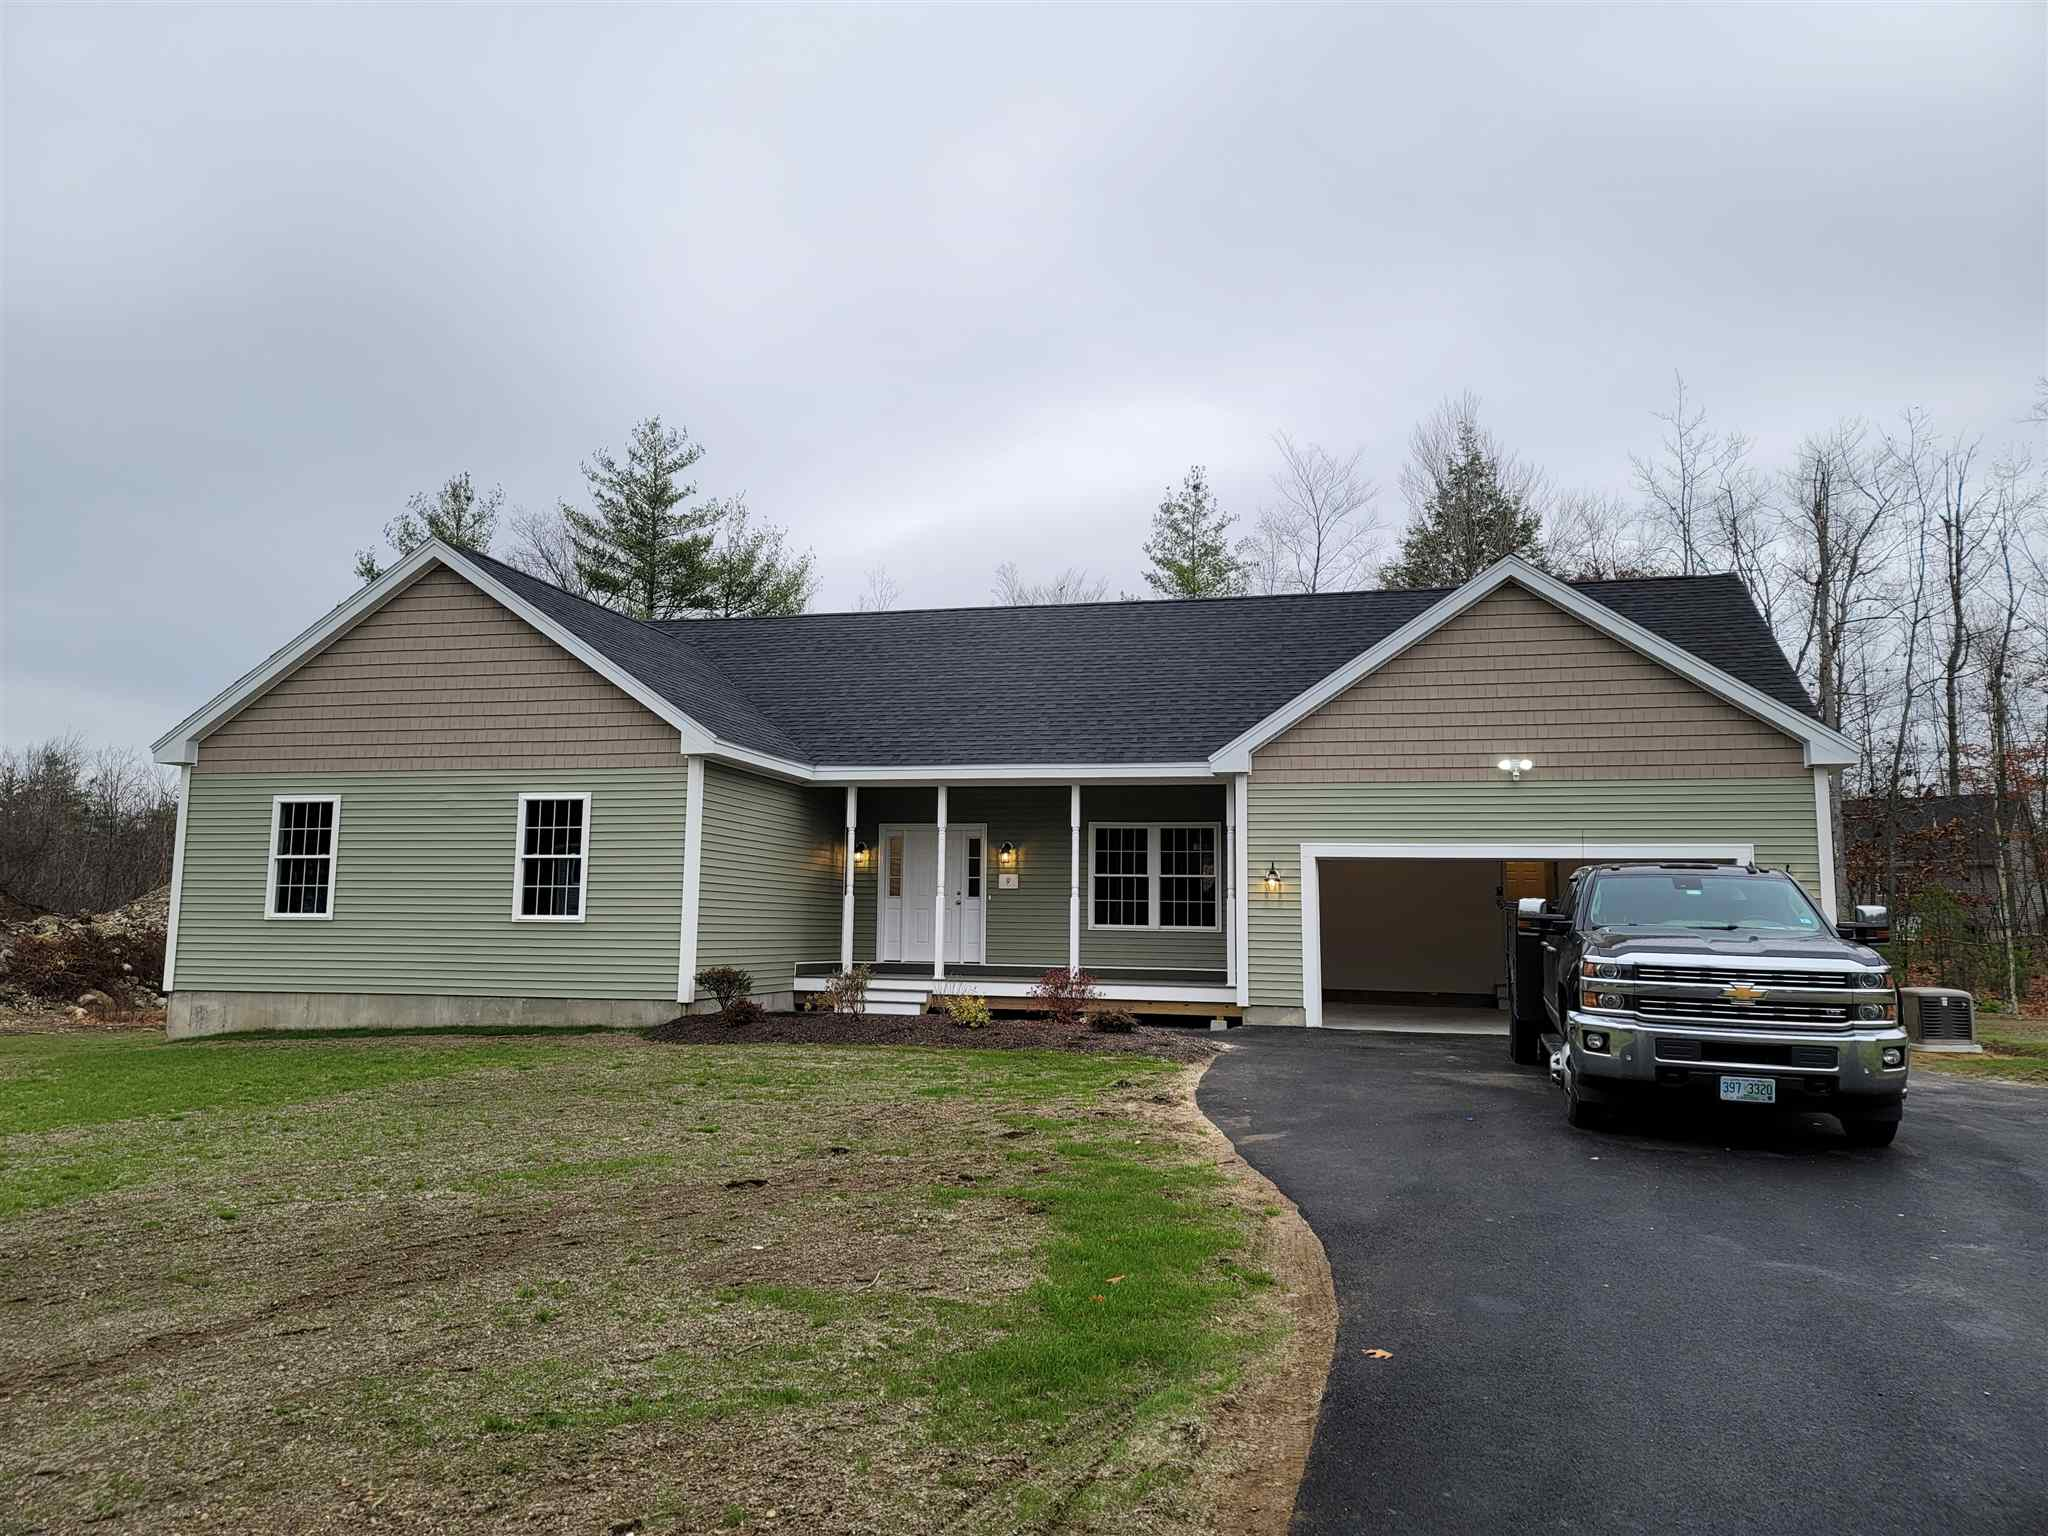 MLS 4728183: Lot#14 Peregrine Way-Unit lot#14, Milford NH